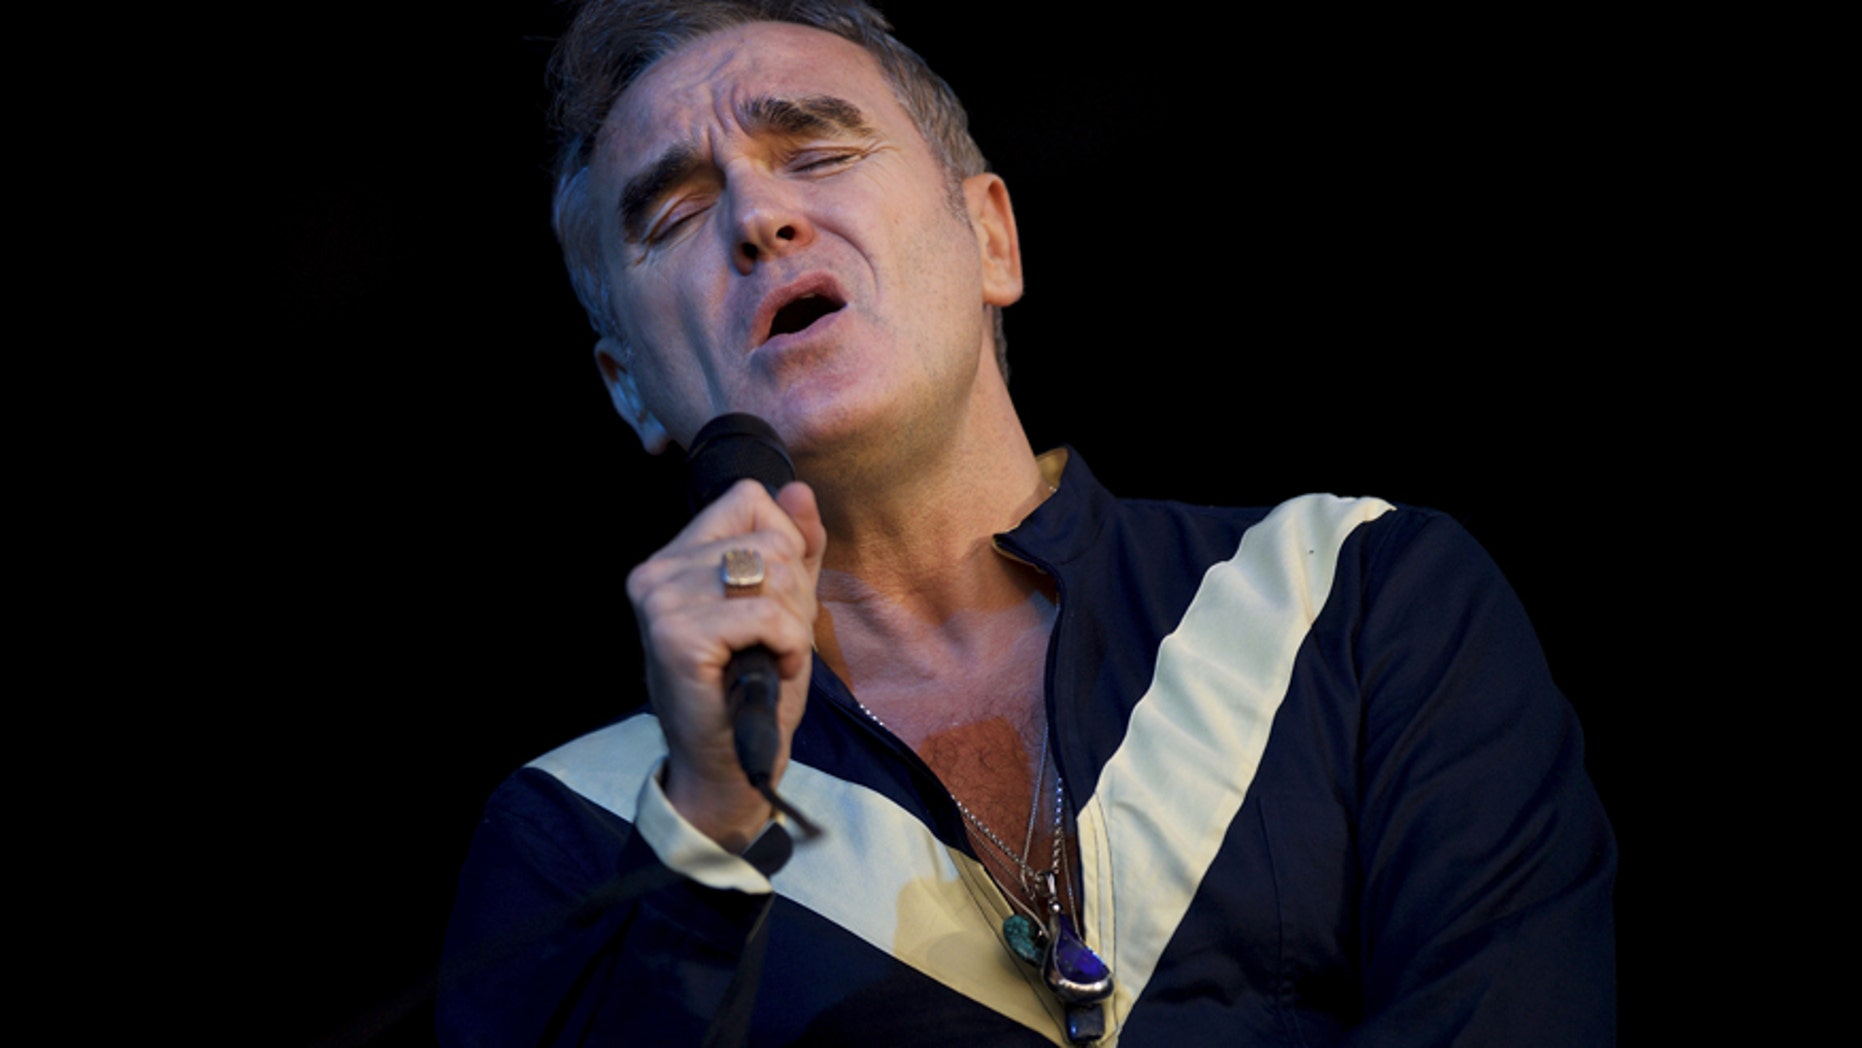 Morrissey mobbed on stage